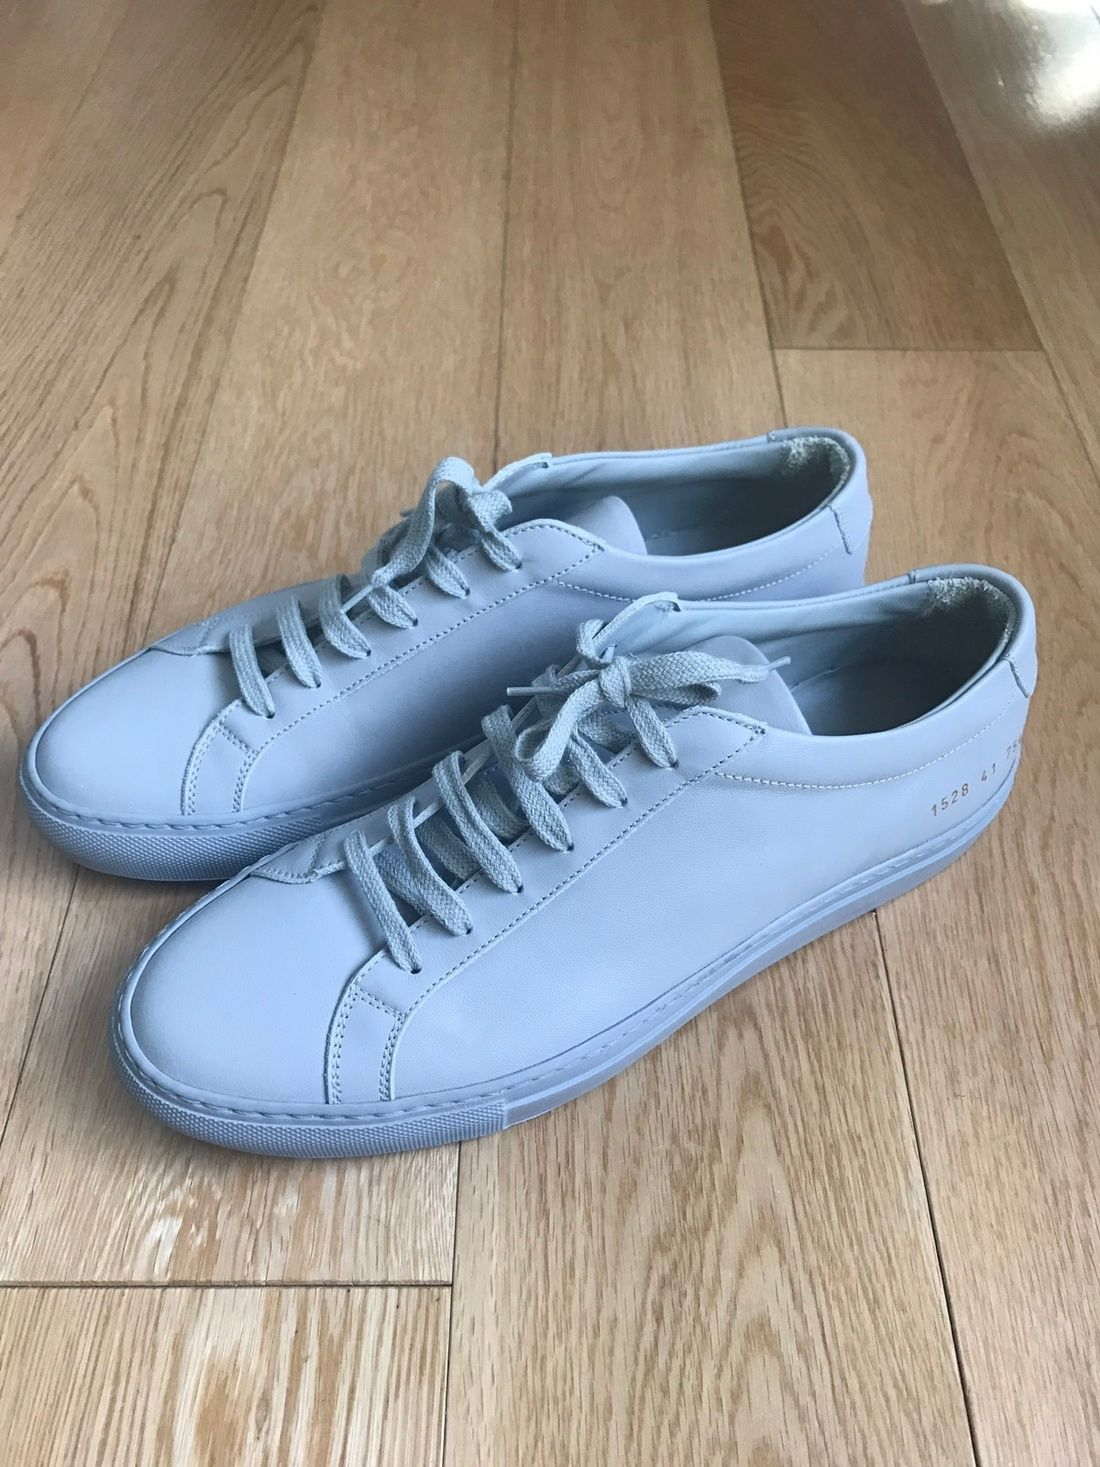 6914d05bf021 Common Projects Achilles Low Light Grey Sz 41 Size 8  250 - Grailed ...